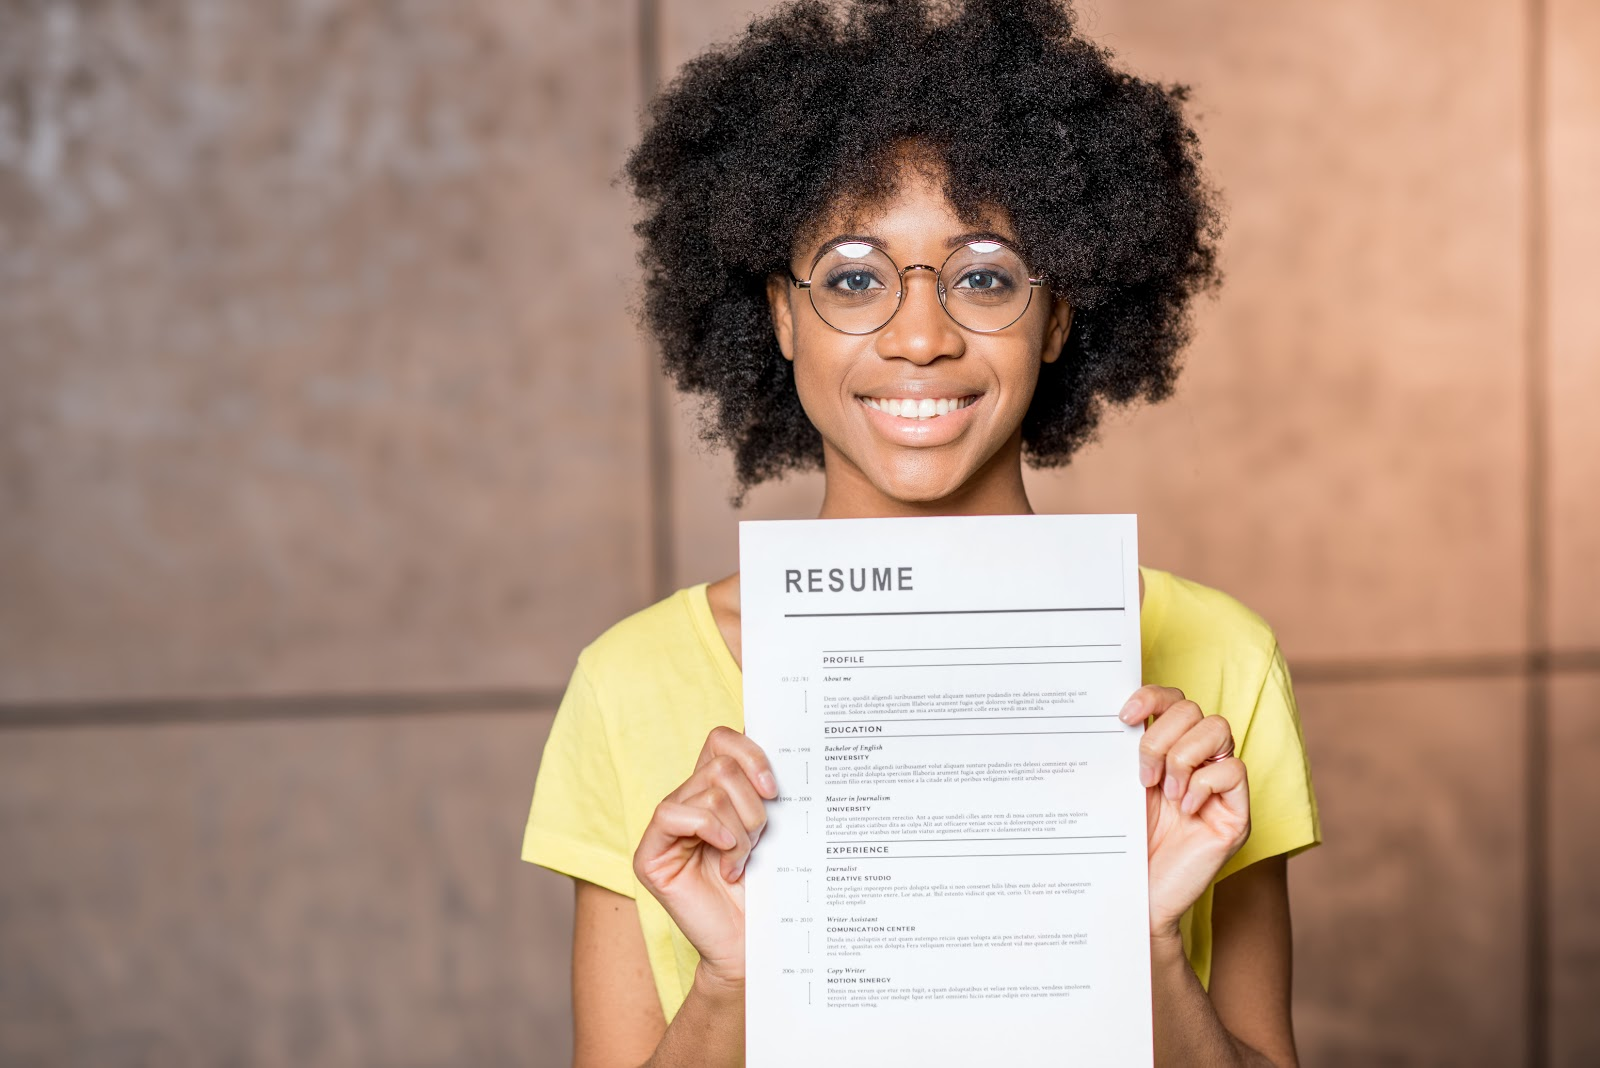 Jobs for recent college graduates: Woman holds resume up to camera